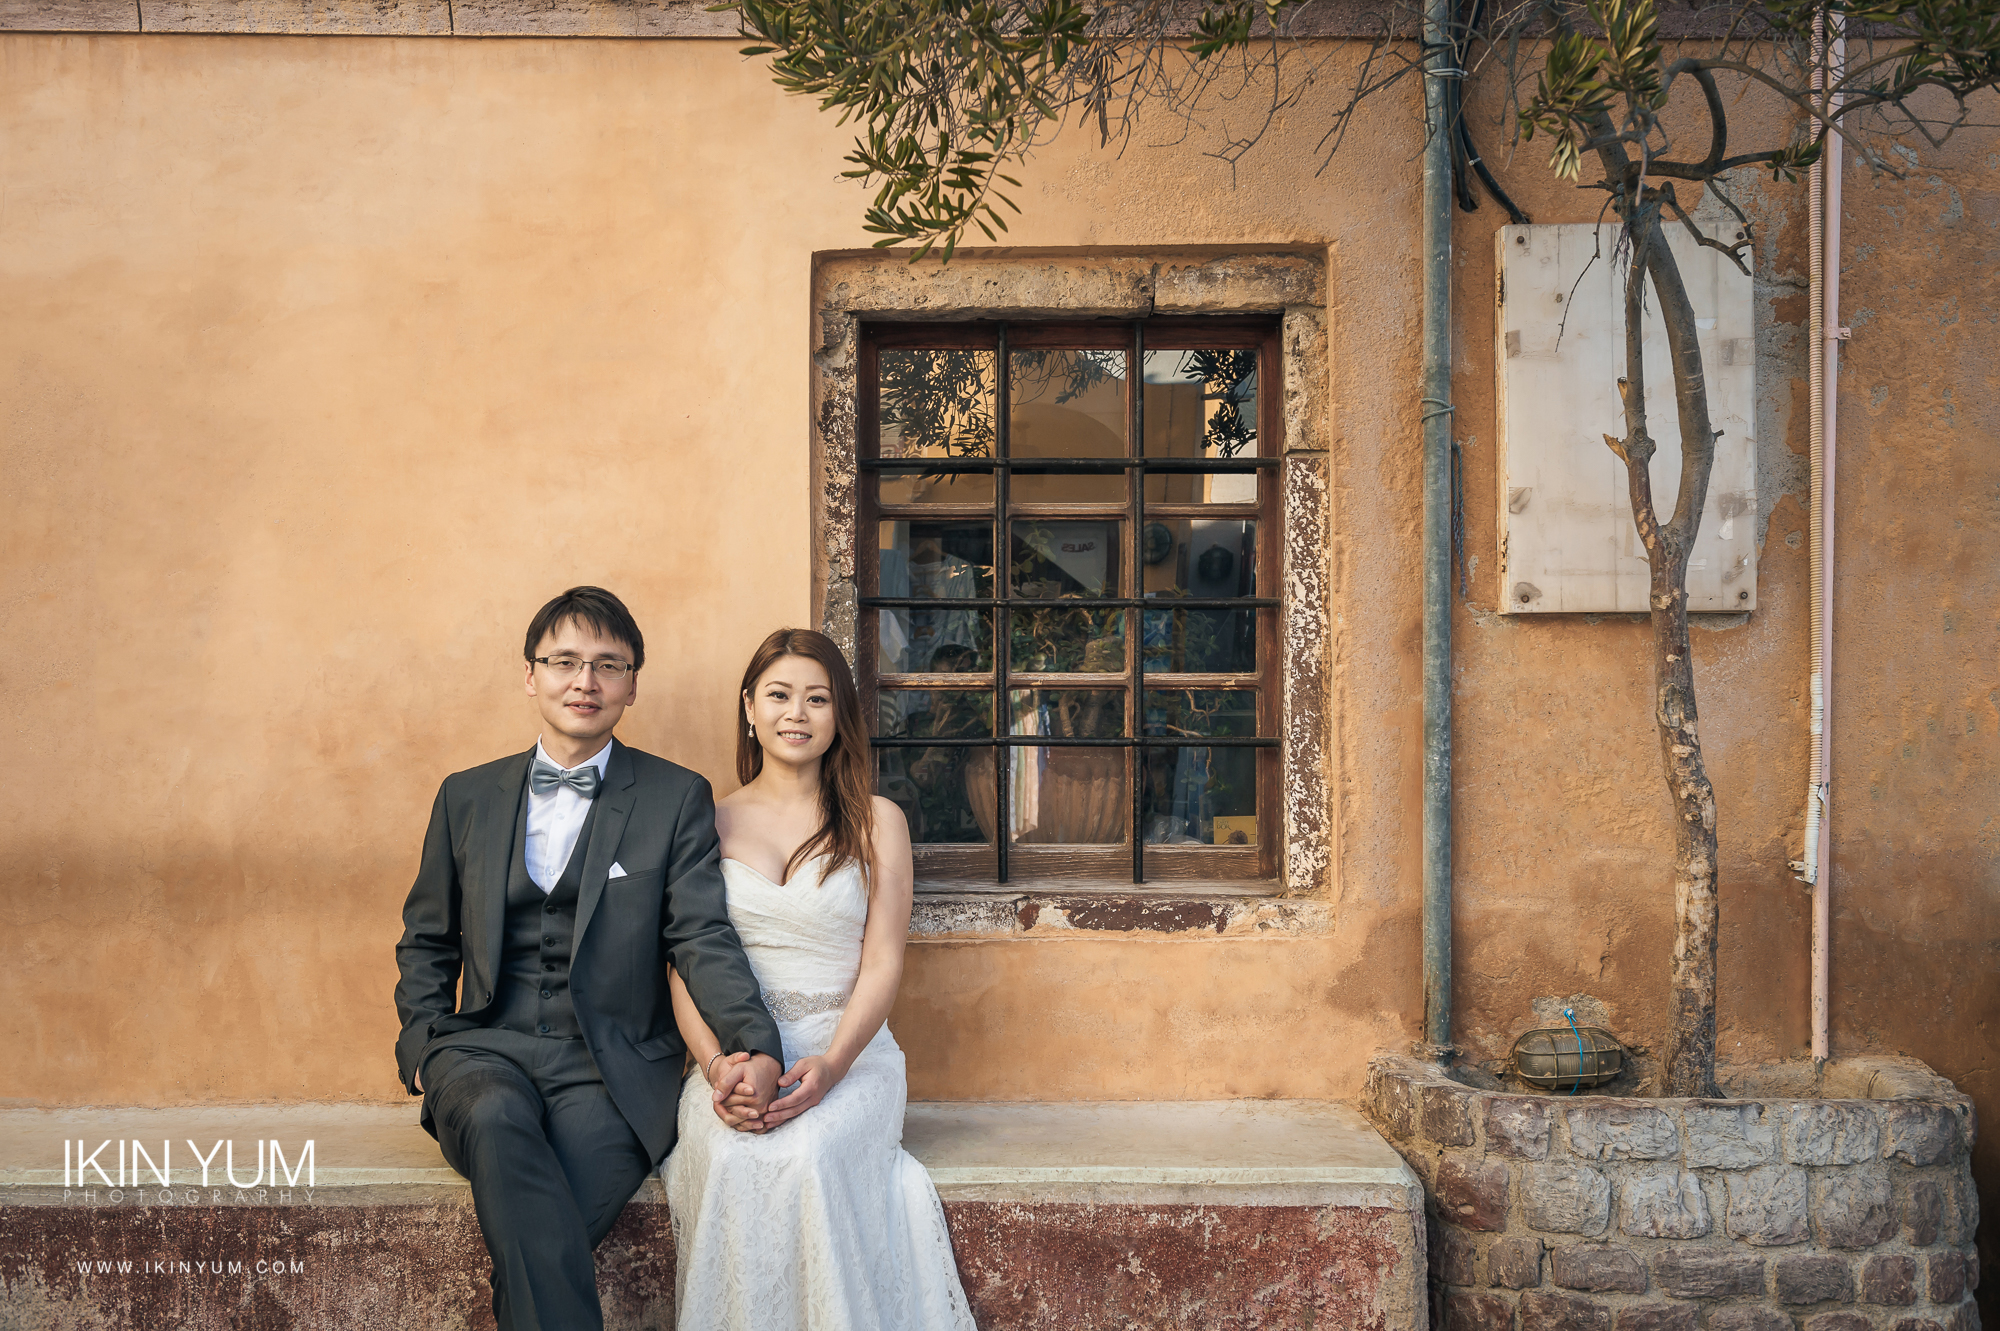 Michelle & Kevin Pre-Wedding Shoot - Ikin Yum Photography-0042.jpg